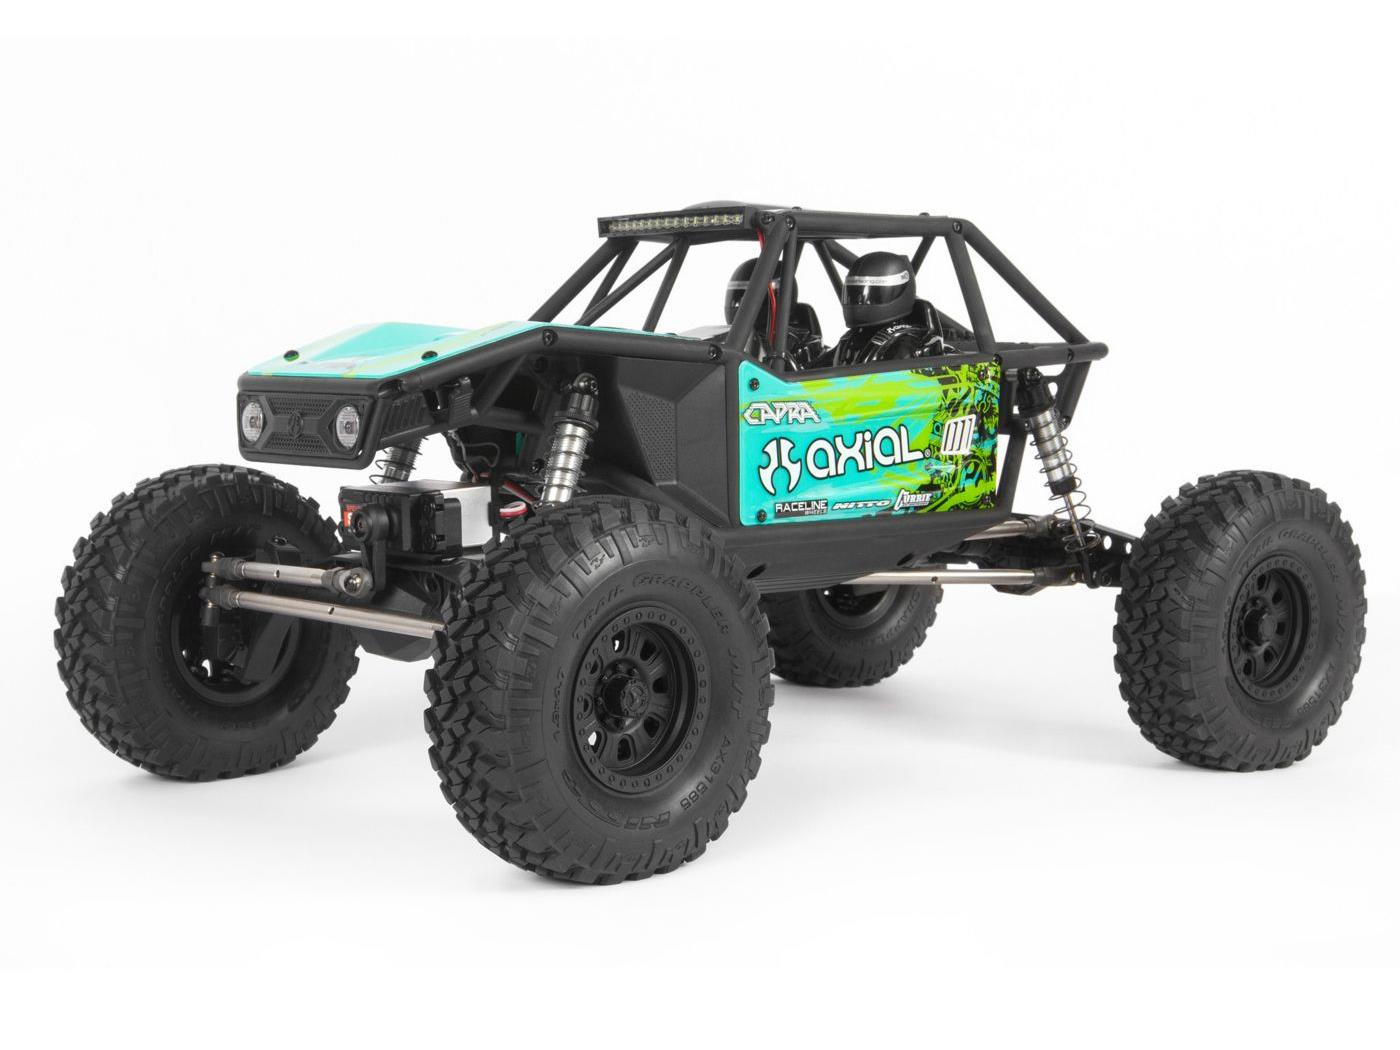 Axial Capra 1.9 Unlimited Trail Buggy 1/10th 4wd RTR Grn